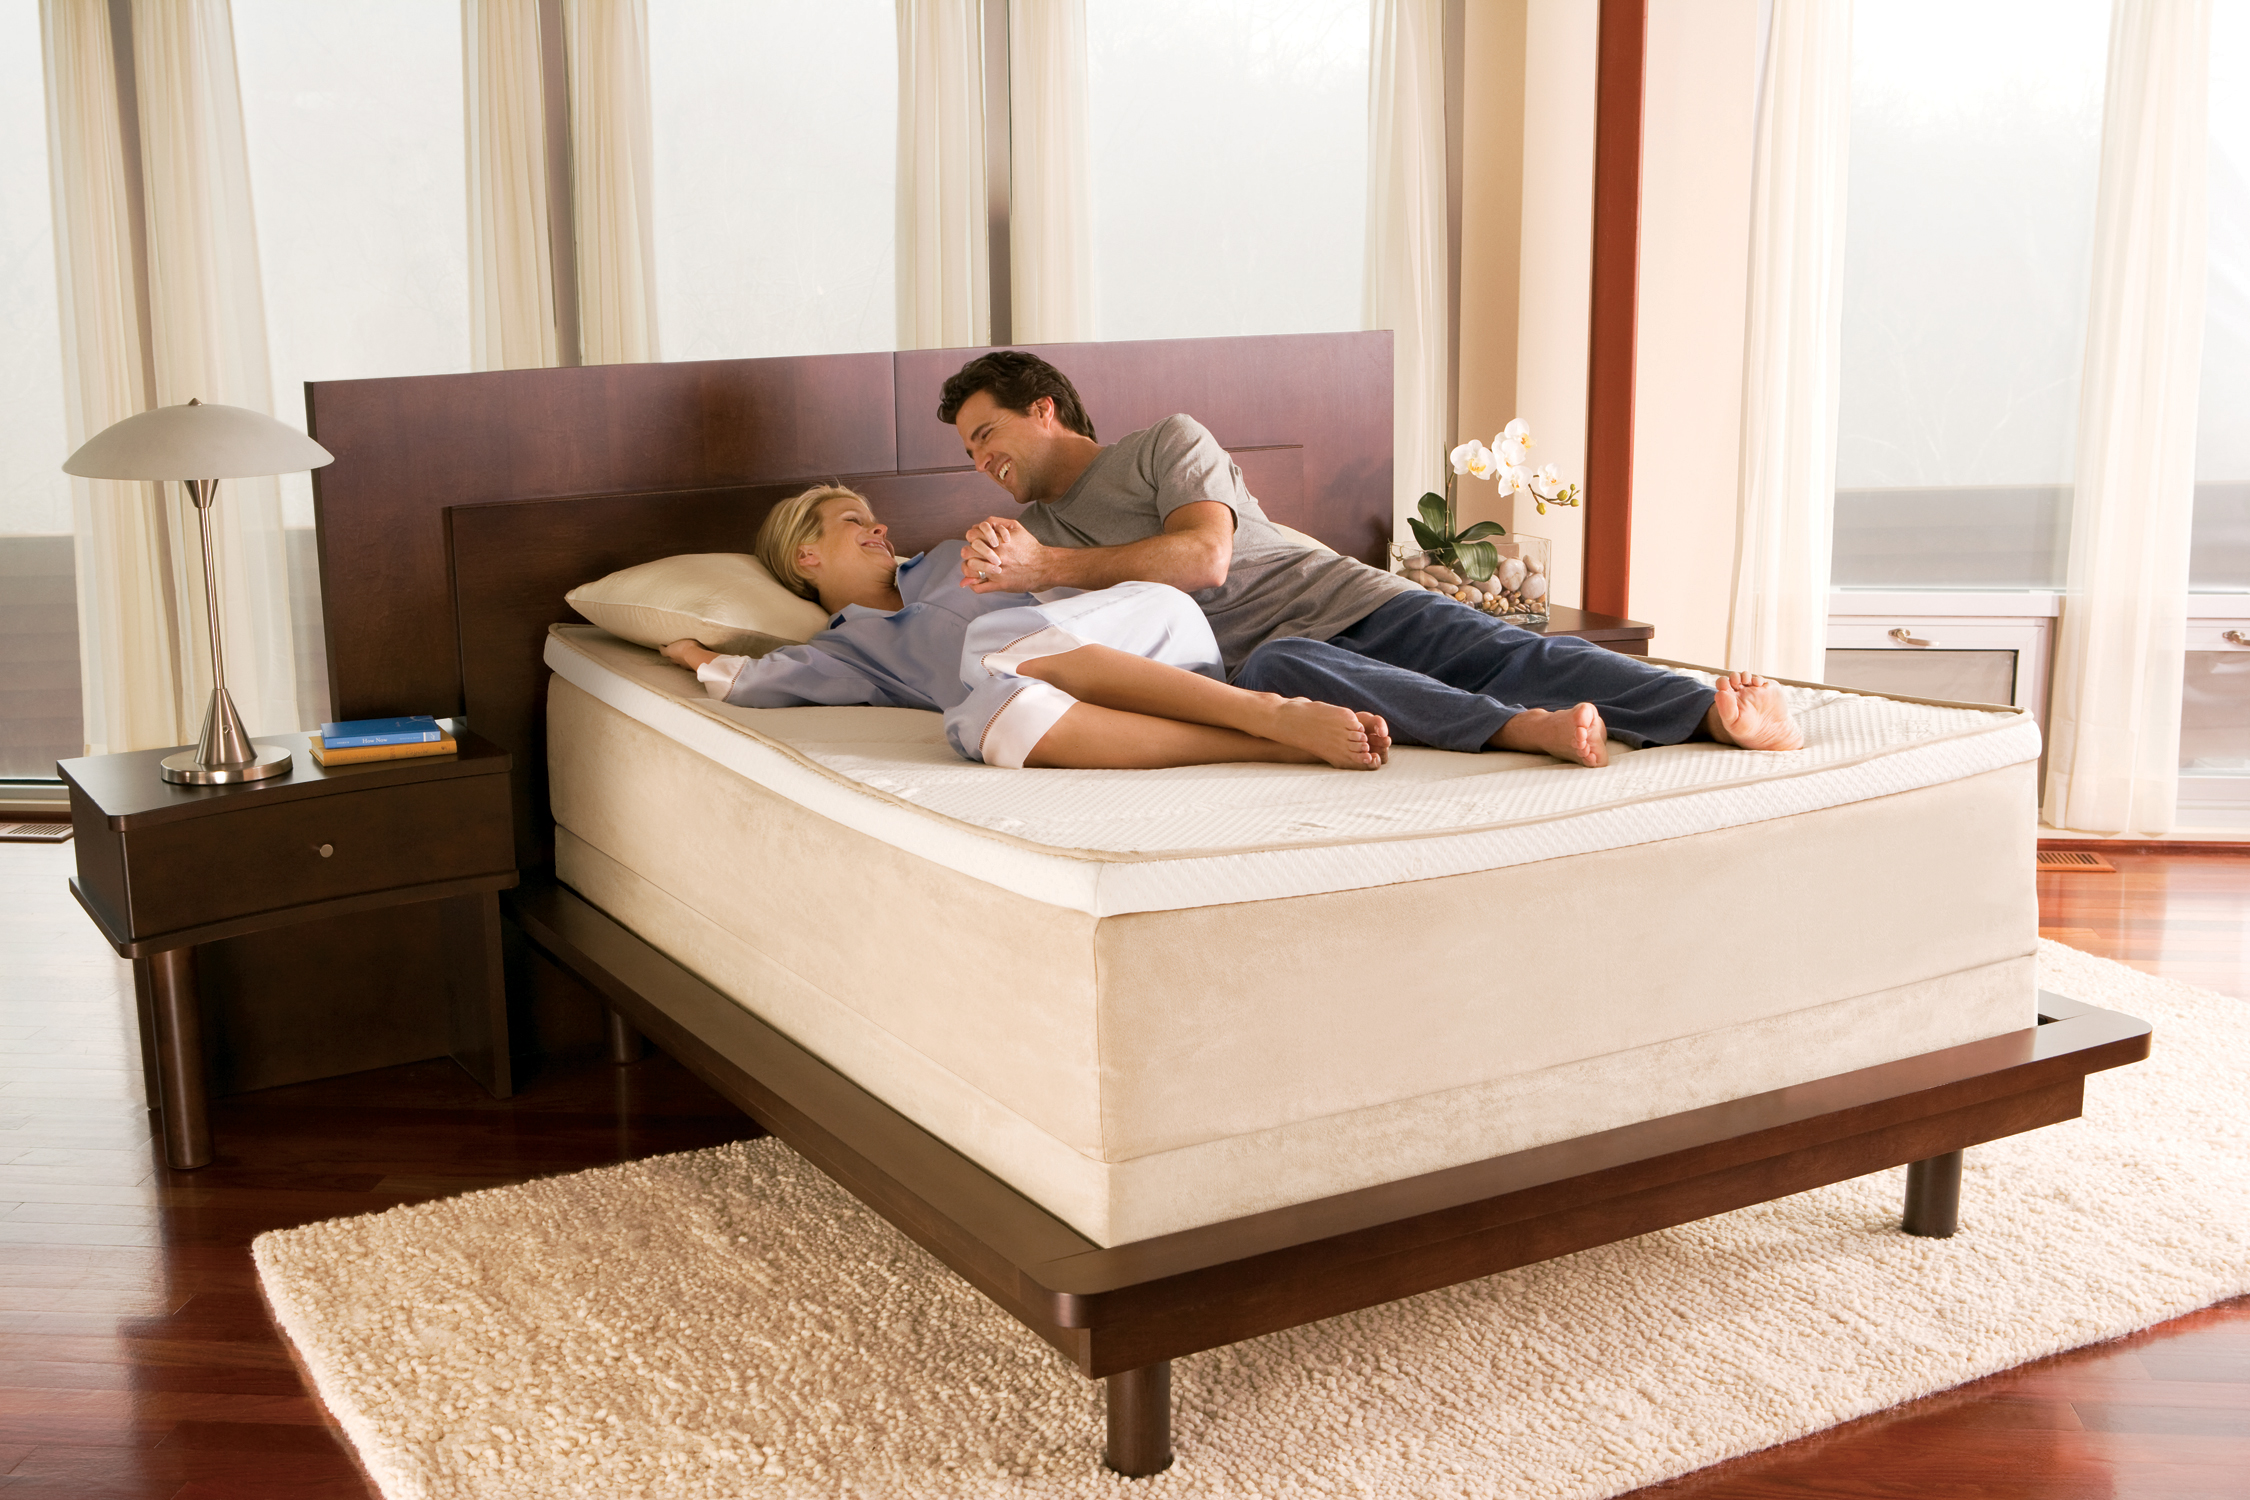 Top 7 Tempurpedic Mattress Models Best Reviews 2018